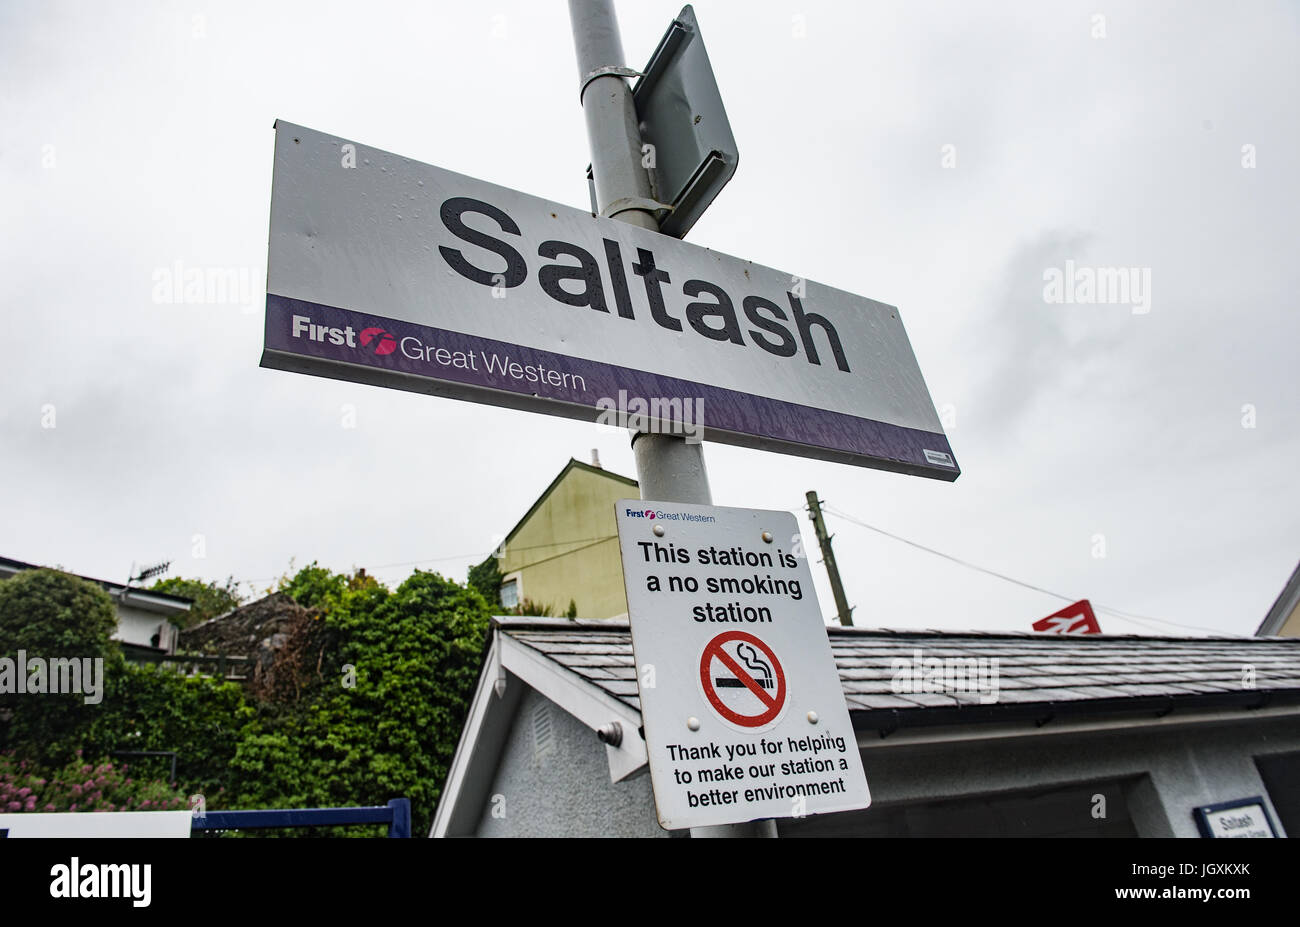 Picture by Paul Slater/PSI - Copyrighted Image  - Saltash Train Station, Cornwall, UK. - Stock Image